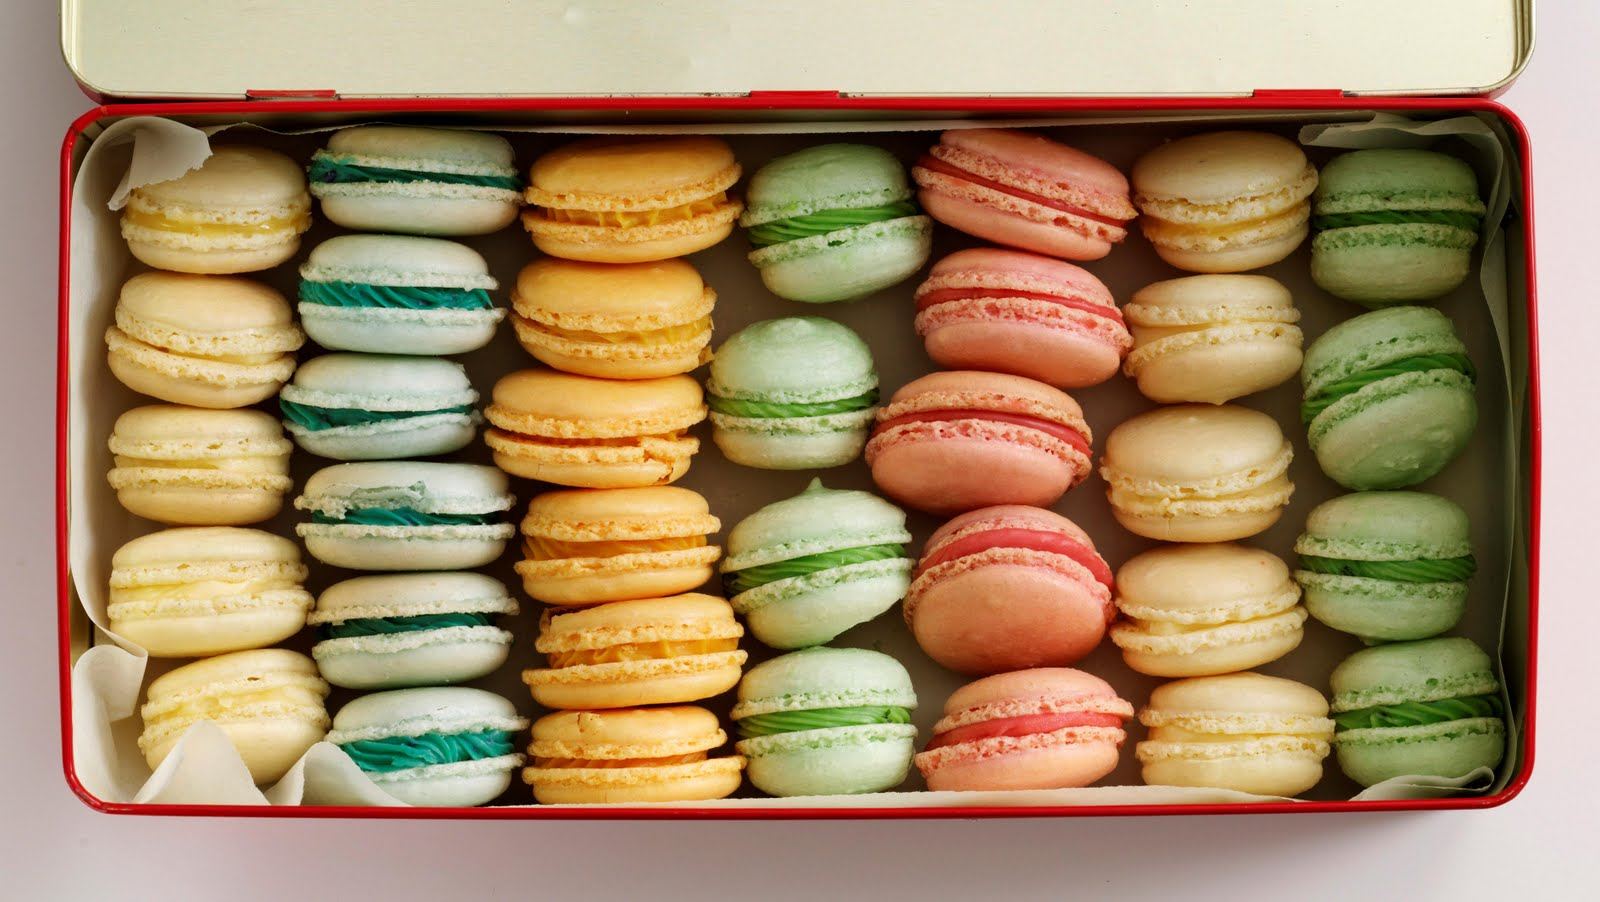 Sandras kitchen: French Macarons